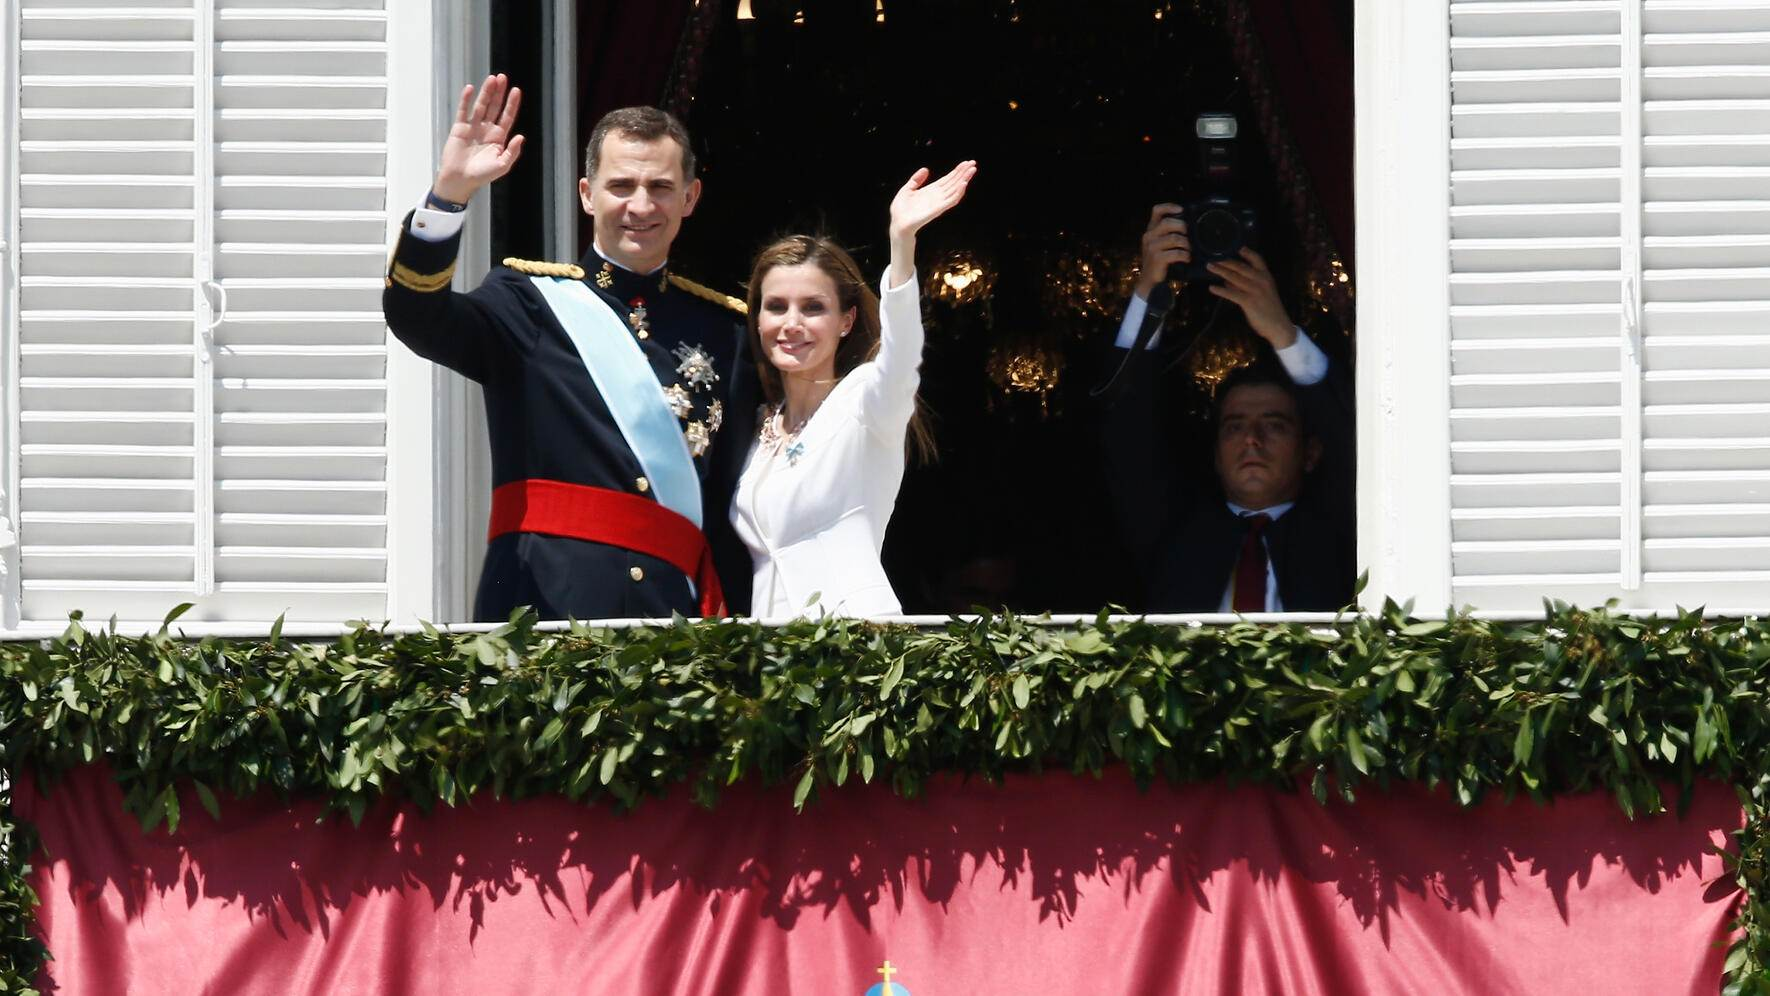 MADRID, SPAIN - JUNE 19:  King Felipe VI of Spain and Queen Letizia of Spain appear at the balcony of the Royal Palace during the King's official coronation ceremony on June 19, 2014 in Madrid, Spain. The coronation of King Felipe VI is held in Madrid. His father, the former King Juan Carlos of Spain abdicated on June 2nd after a 39 year reign. The new King is joined by his wife Queen Letizia of Spain.  (Photo by Andreas Rentz/Getty Images)